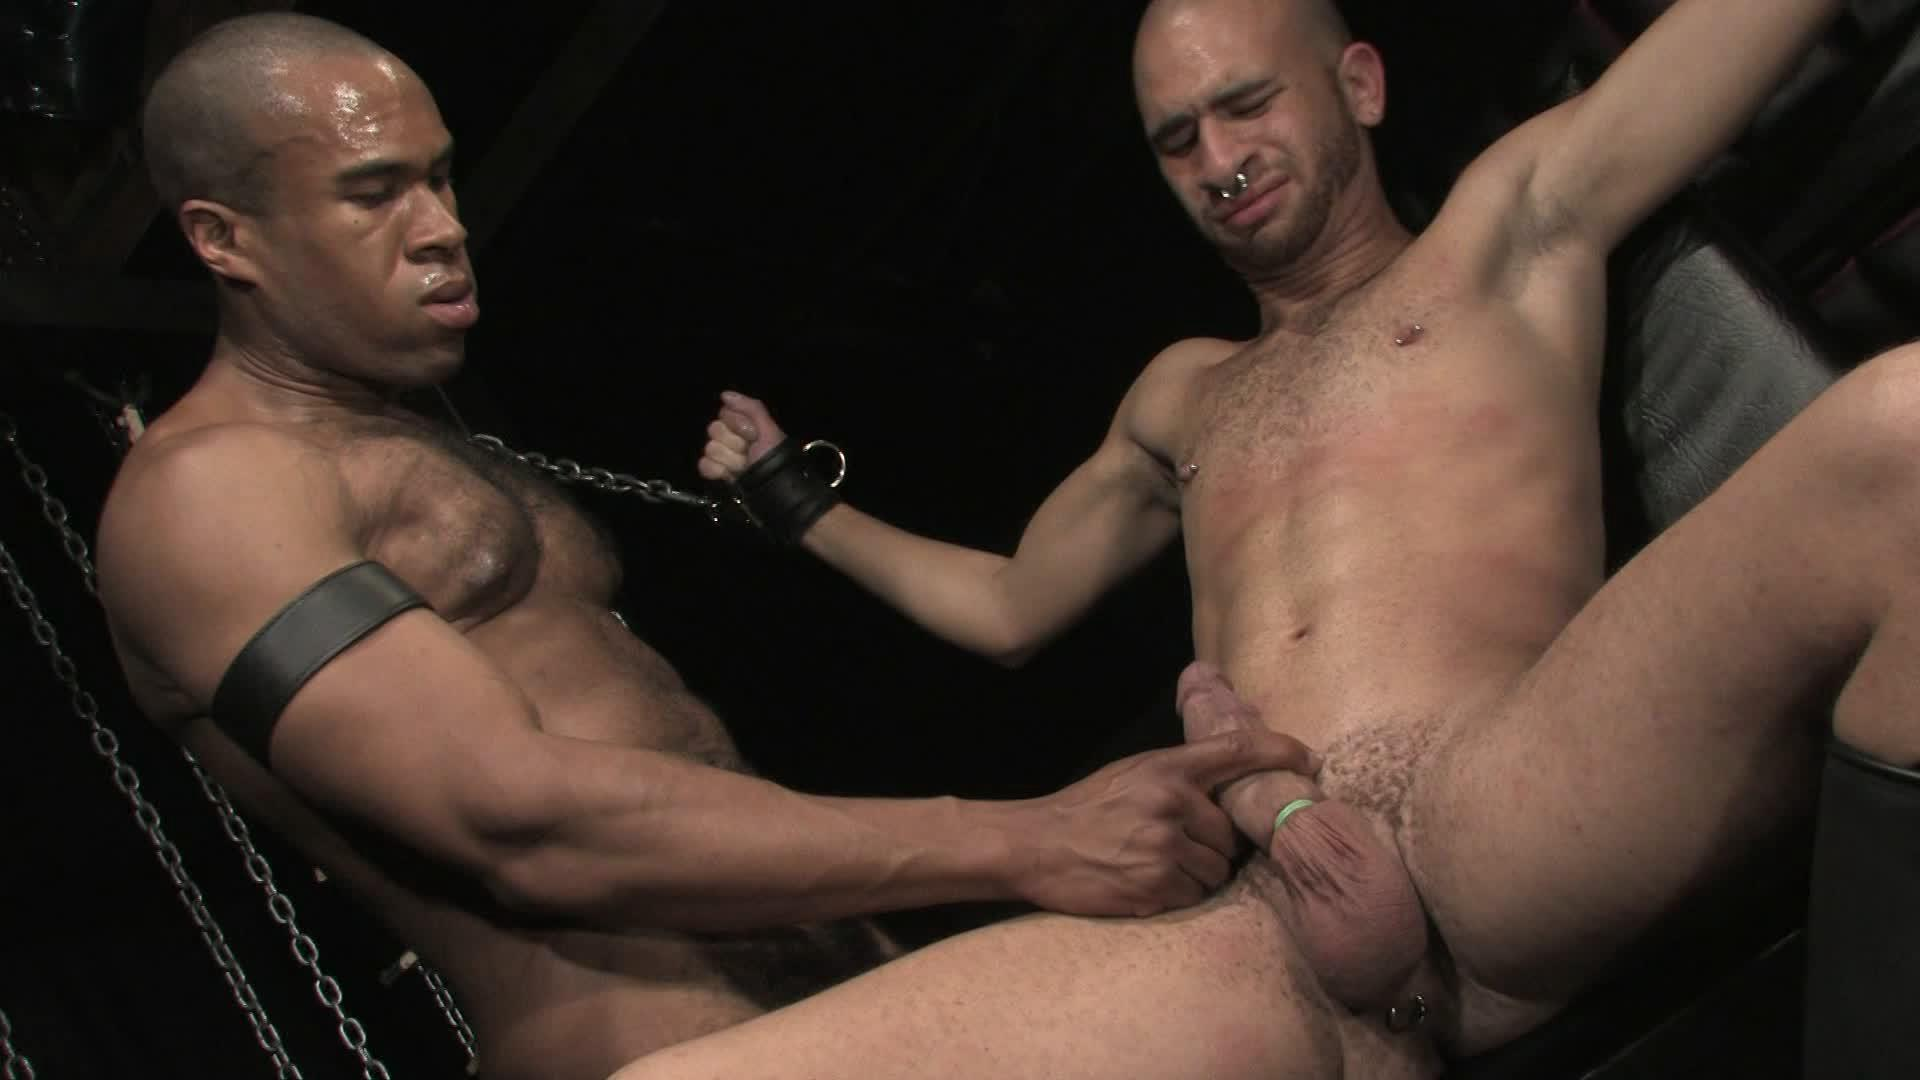 The dungeon is filled with dig dicks, hard muscle and rough sex for the latest release from Fetish Force.